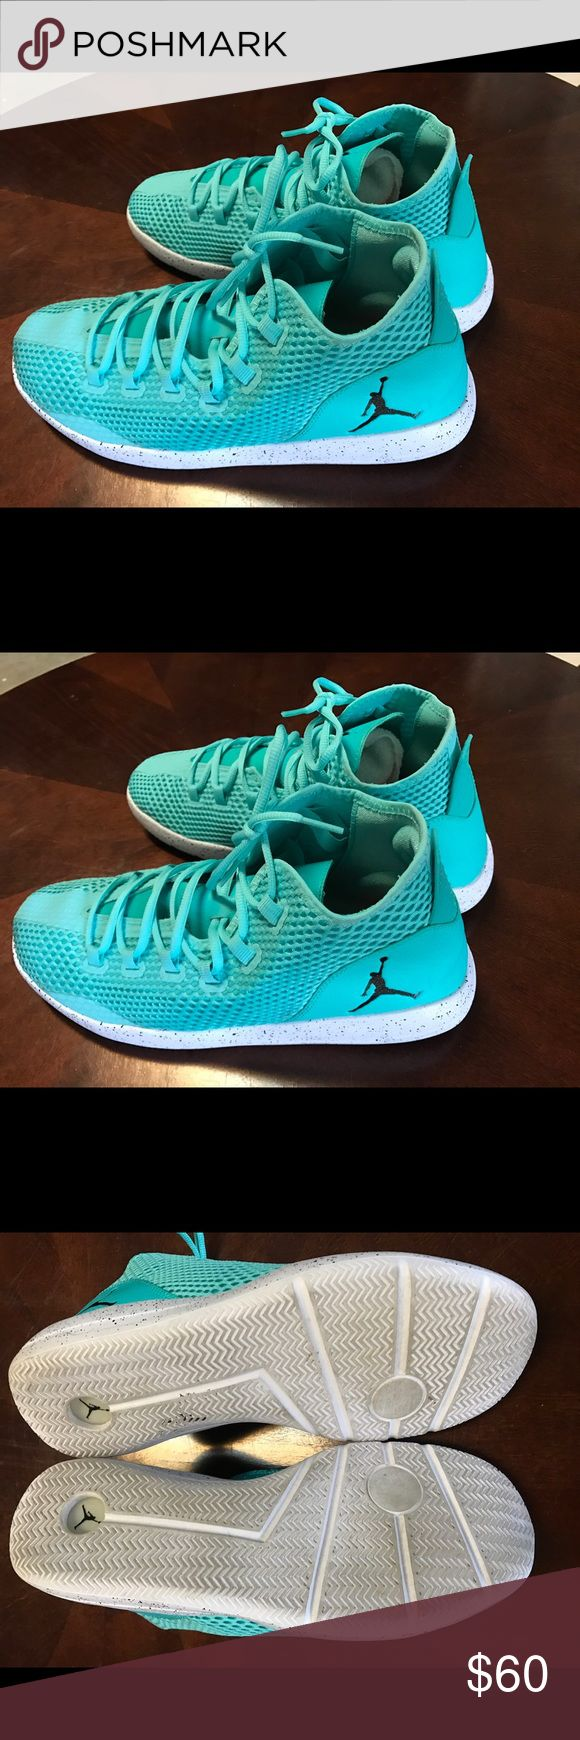 Nike Men's Michael Jordan Basketball Shoes Sz 13 Nike Men's Turquoise Michael Jordan Basketball Shoes Size 13 Men's Excellent condition and well kept. Comes from a clean non smoking environment. Combined shipping is always welcome. Air Jordan Shoes Sneakers